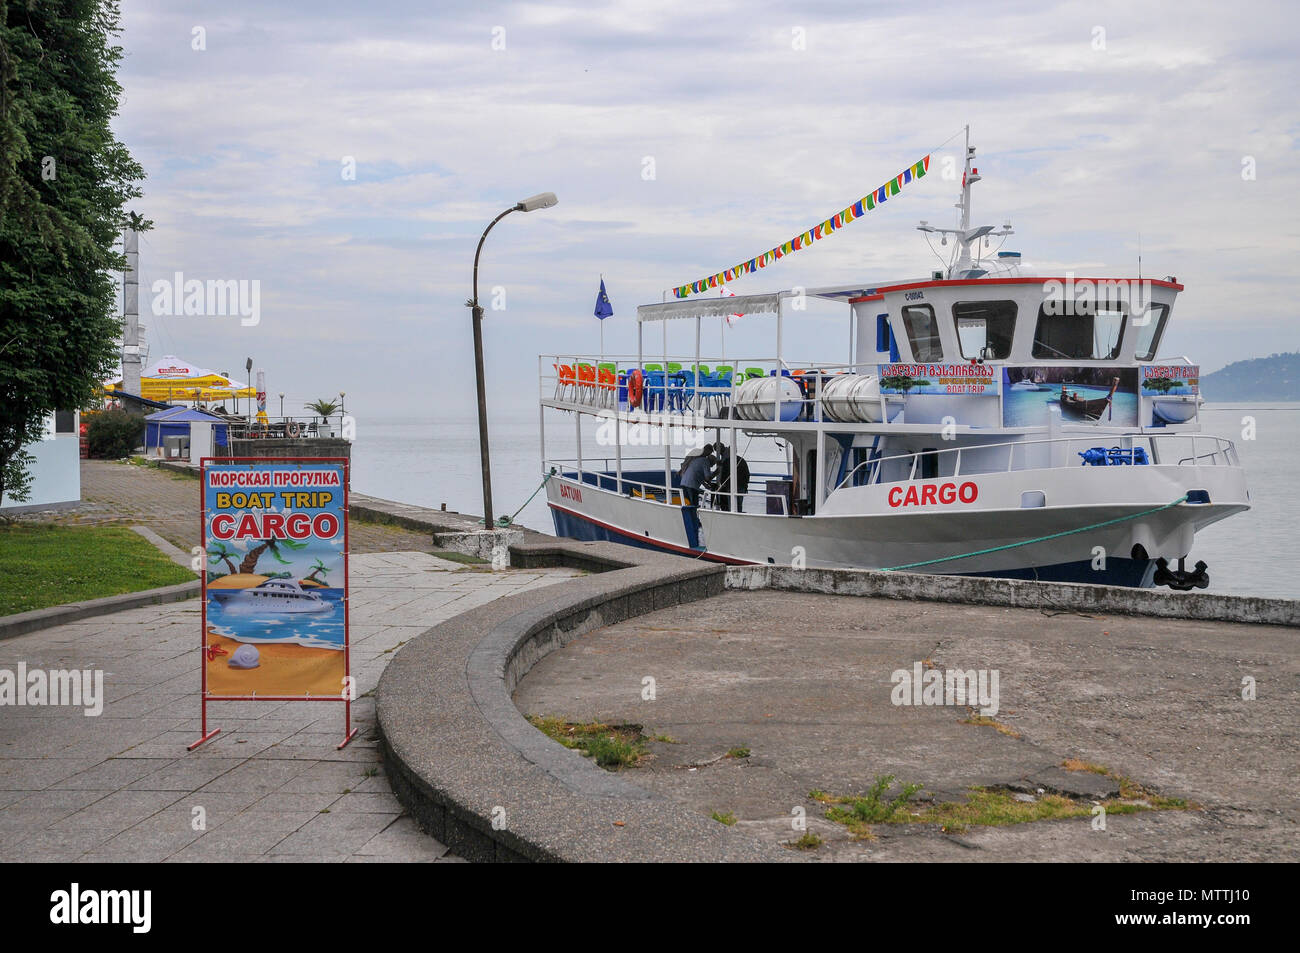 The port of Batumi, Georgia - Stock Image